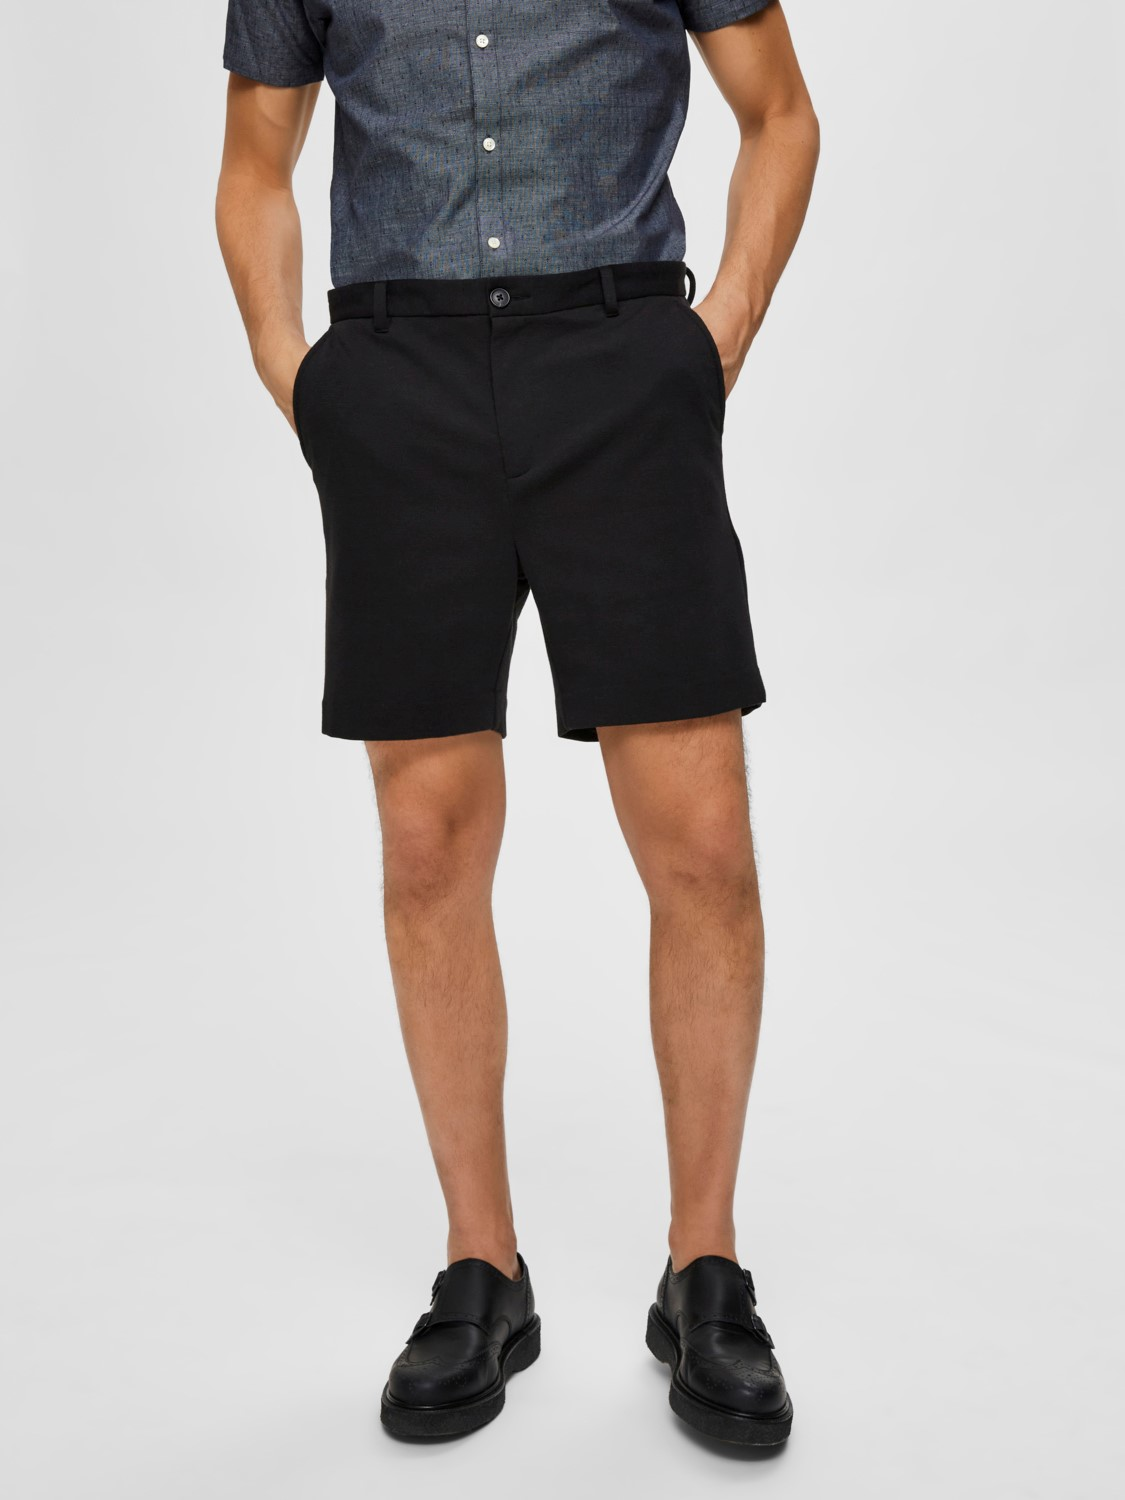 Selected - Slhjersey Shorts Black | GATE 36 Hobro